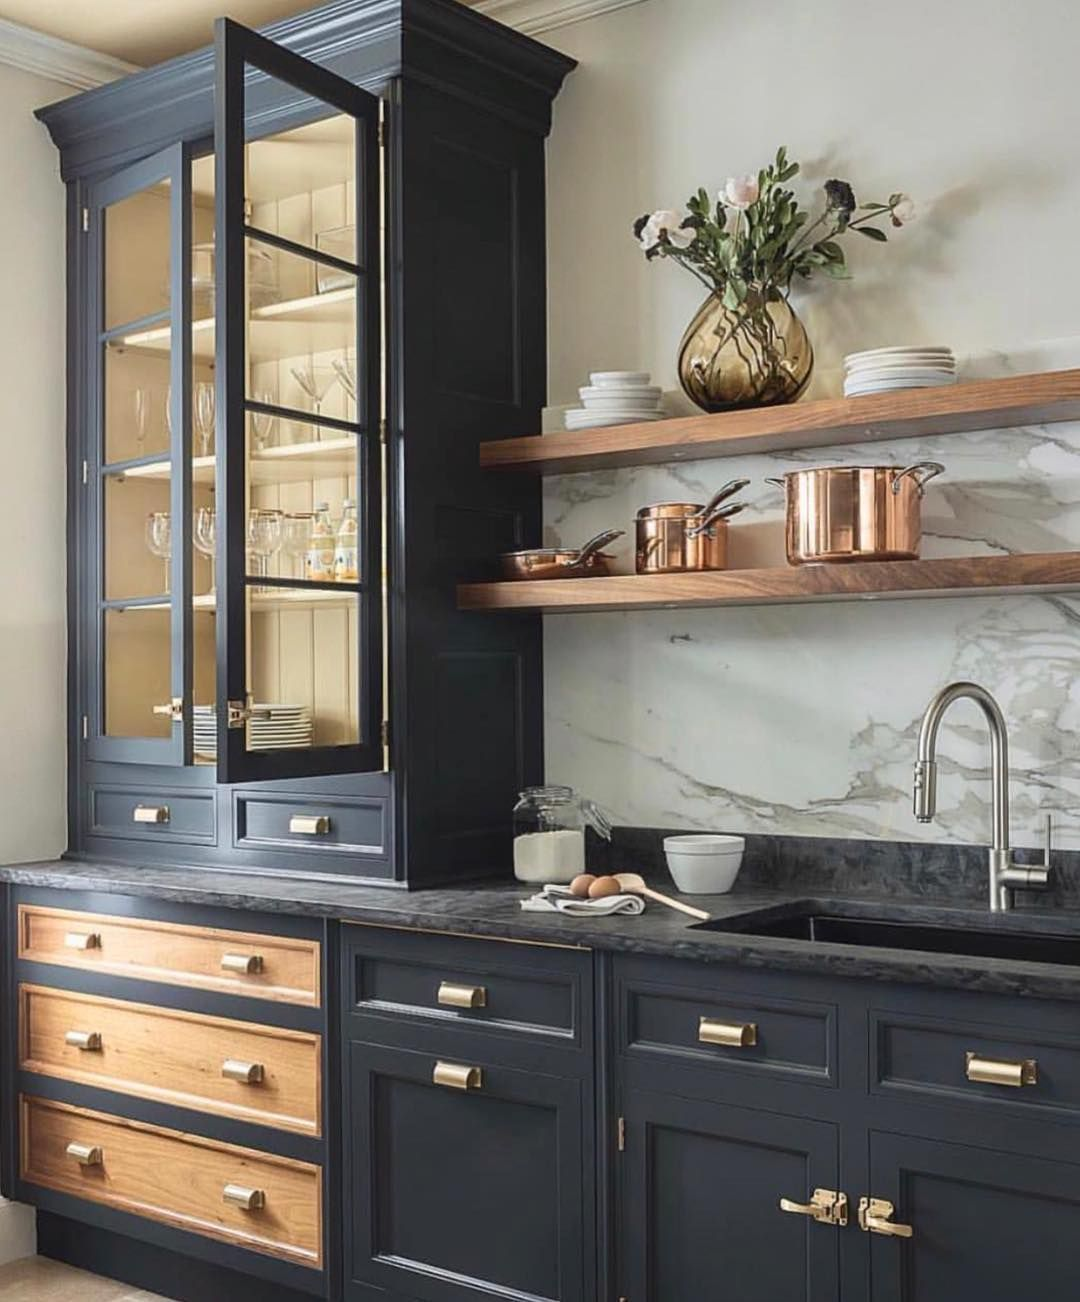 Pure Salt Interiors On Instagram This Kitchen By Christopherpeacock Is Delicious Love The Two Toned Dark Kitchen Trends Kitchen Design Trends Kitchen Style